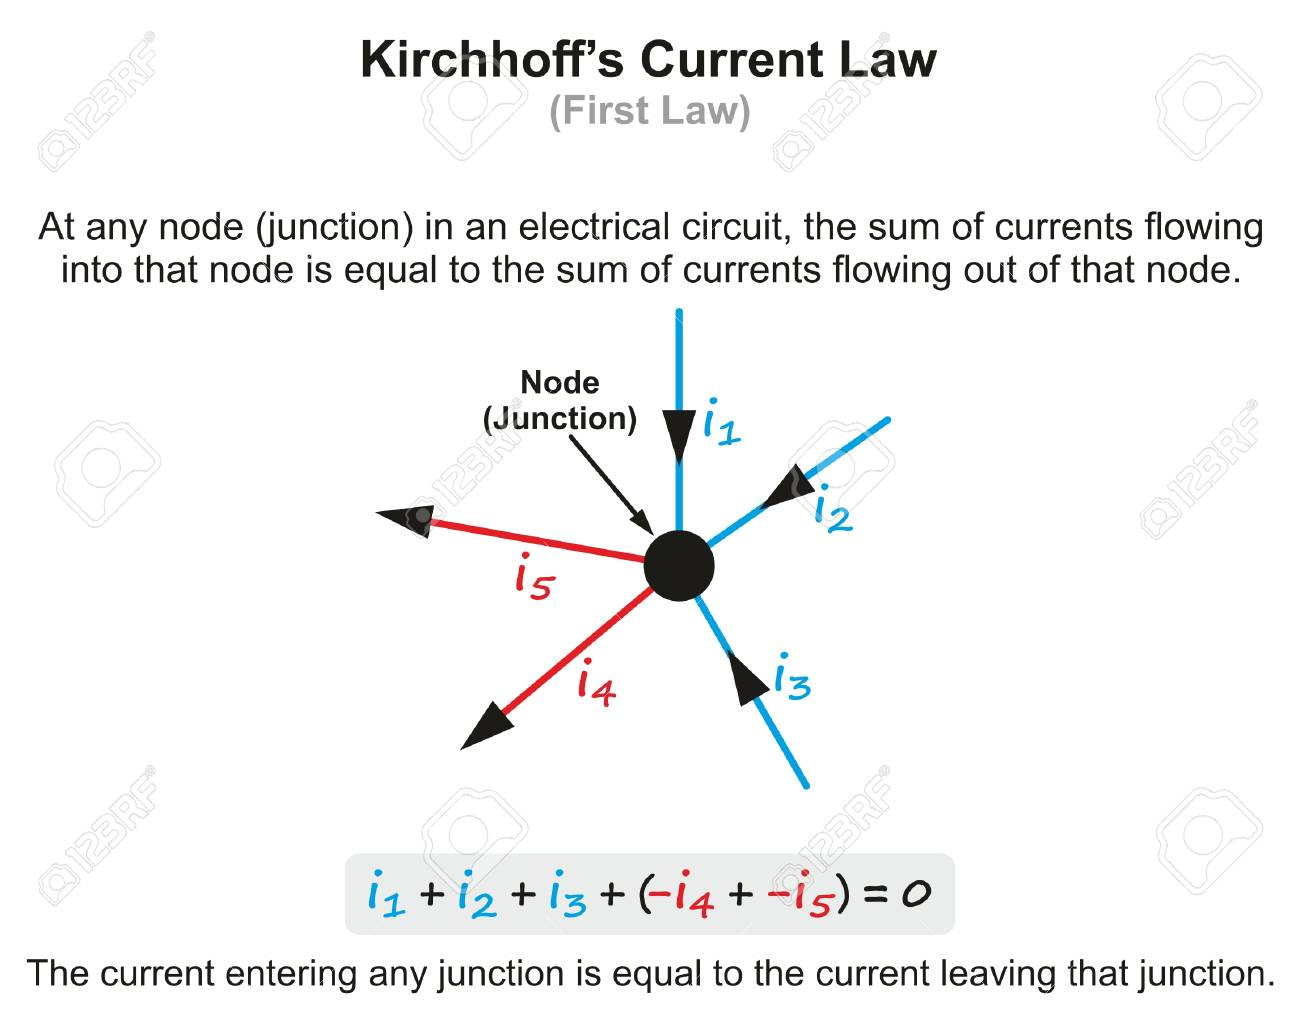 kirchhoff's current law infographic diagram with example showing current  entering circuit and exiting at junction for